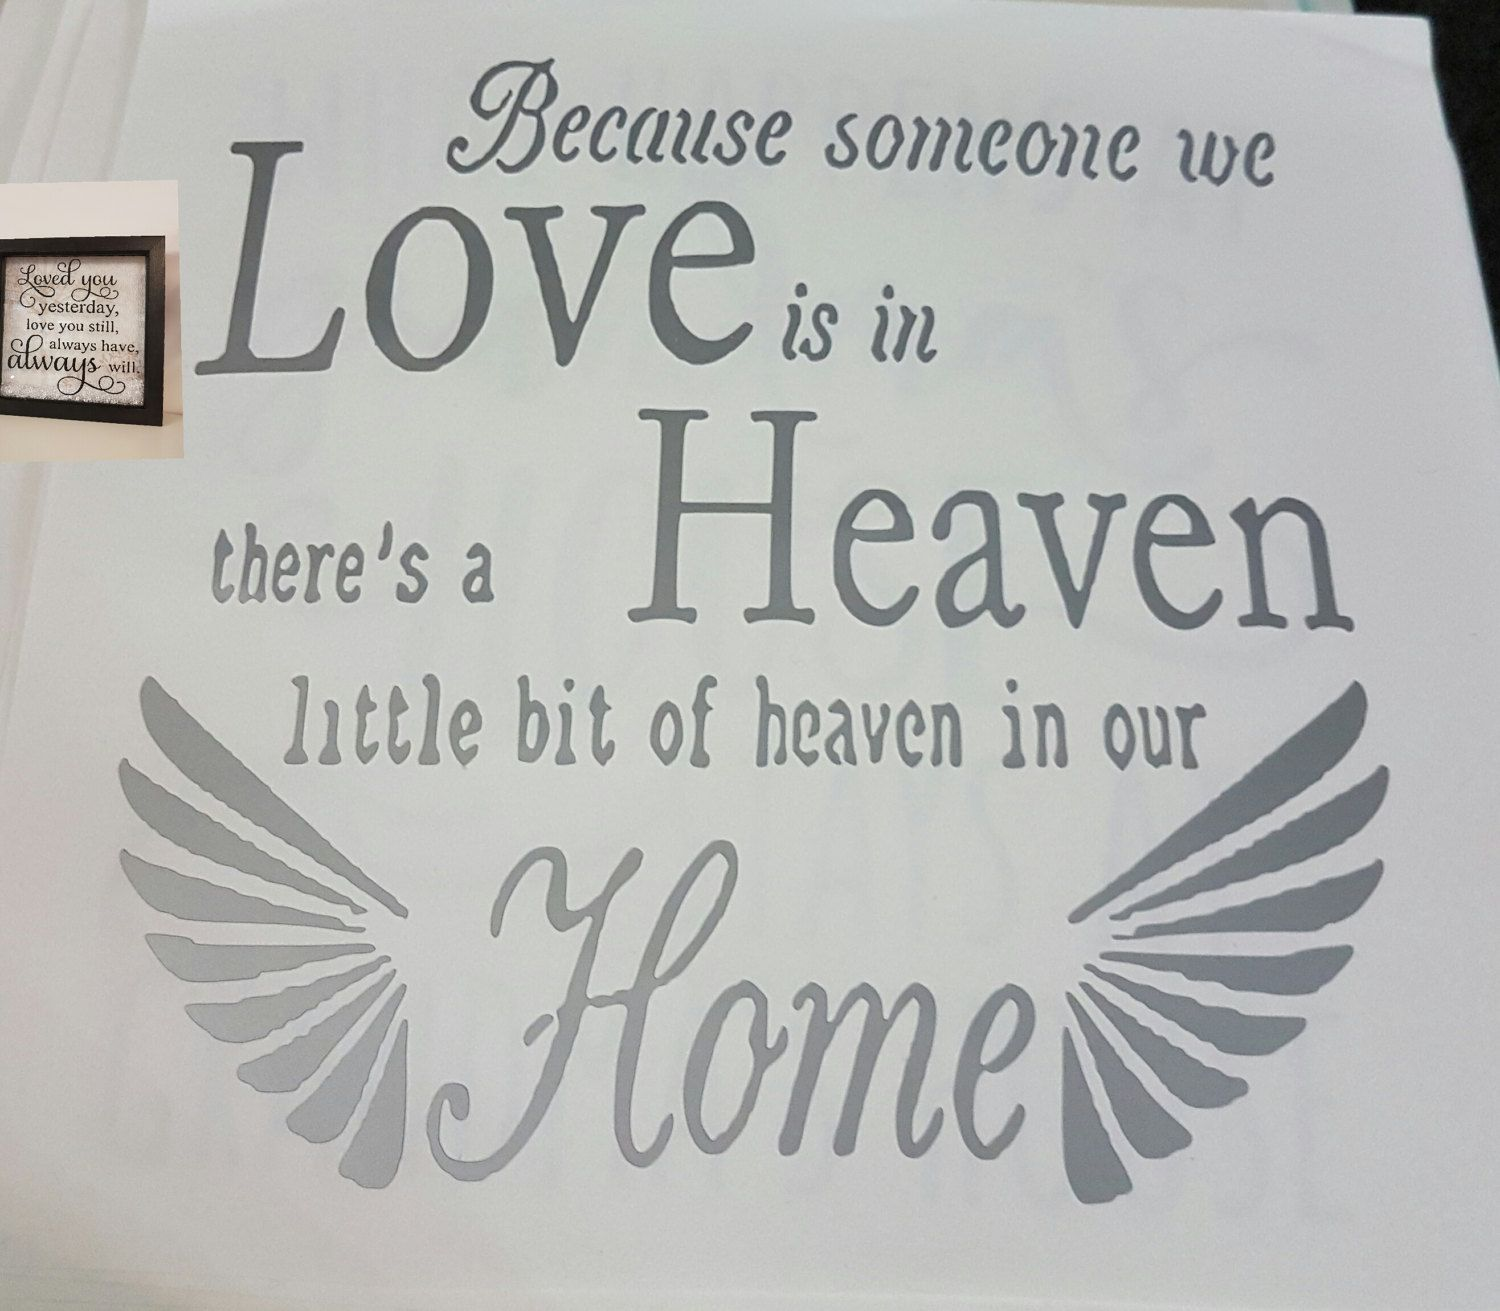 Uncategorized Diy Vinyl Stickers vinyl sticker loss in heaven bereavement wording perfect for diy box frames etc by vinylqueen1981 on